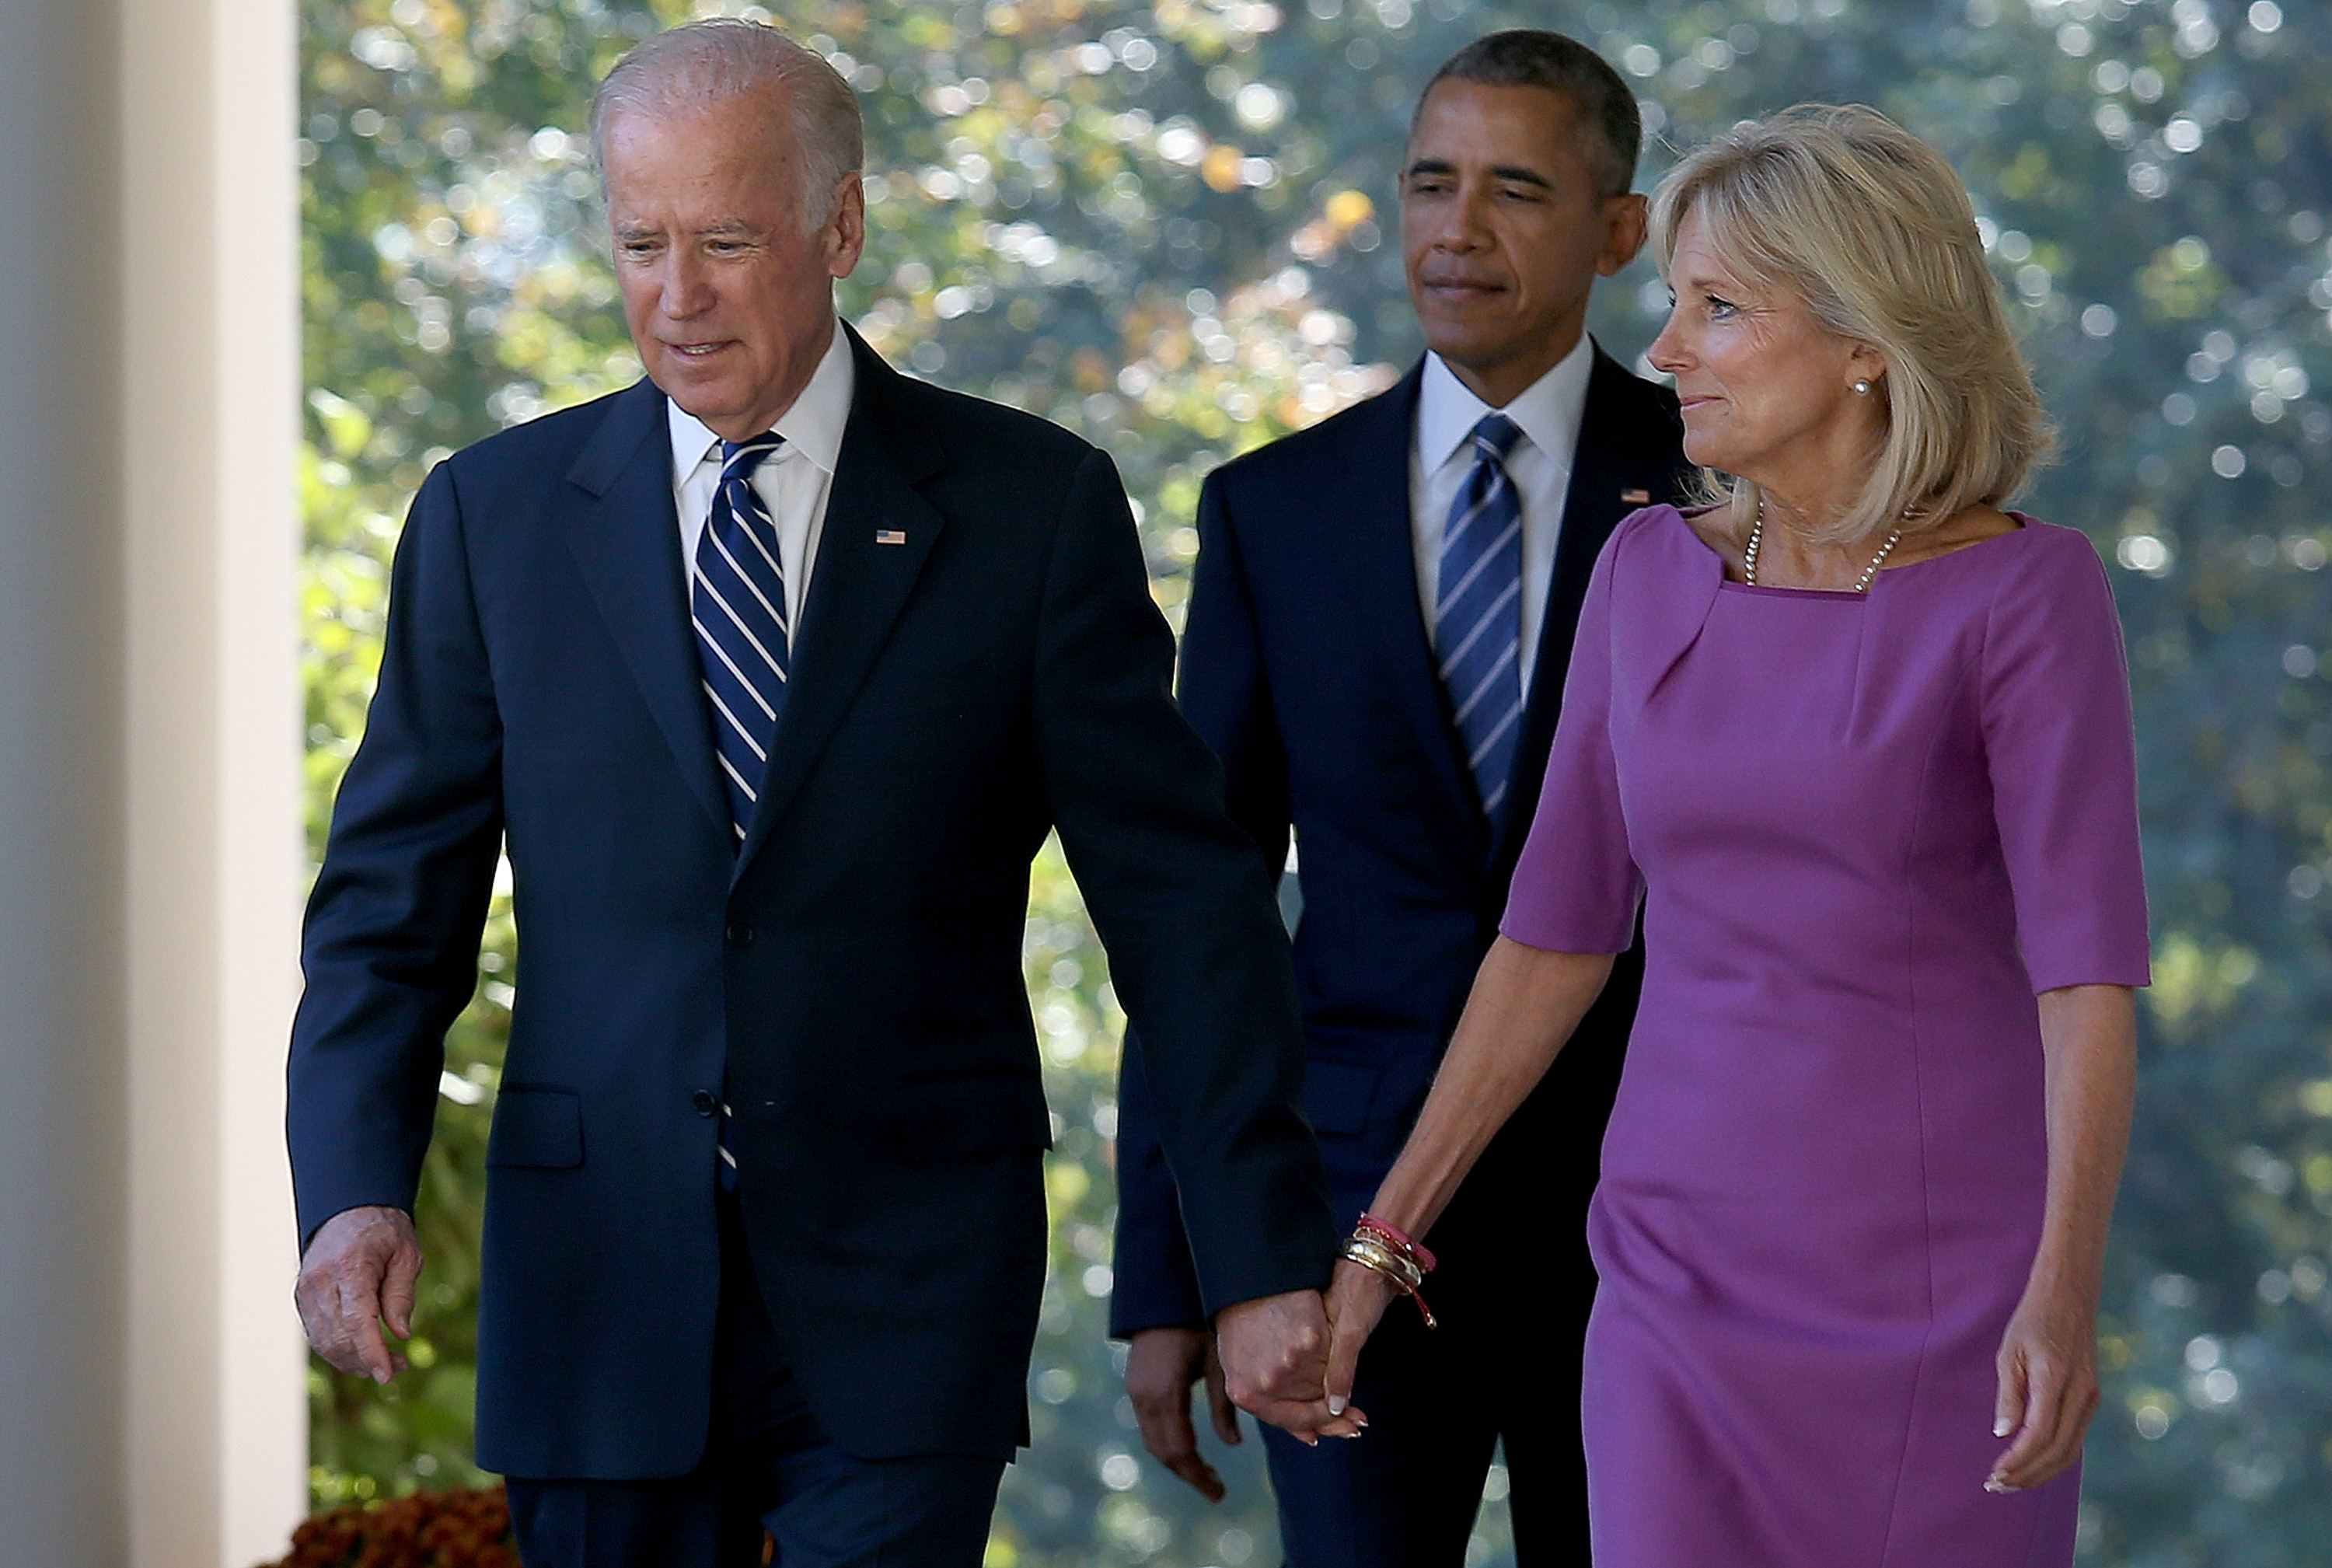 Vice President Joe Biden, followed by U.S. President Barack Obama, holds hands with his wife Jill Biden while walking to the Rose Garden to announce that he will not seek the presidency.